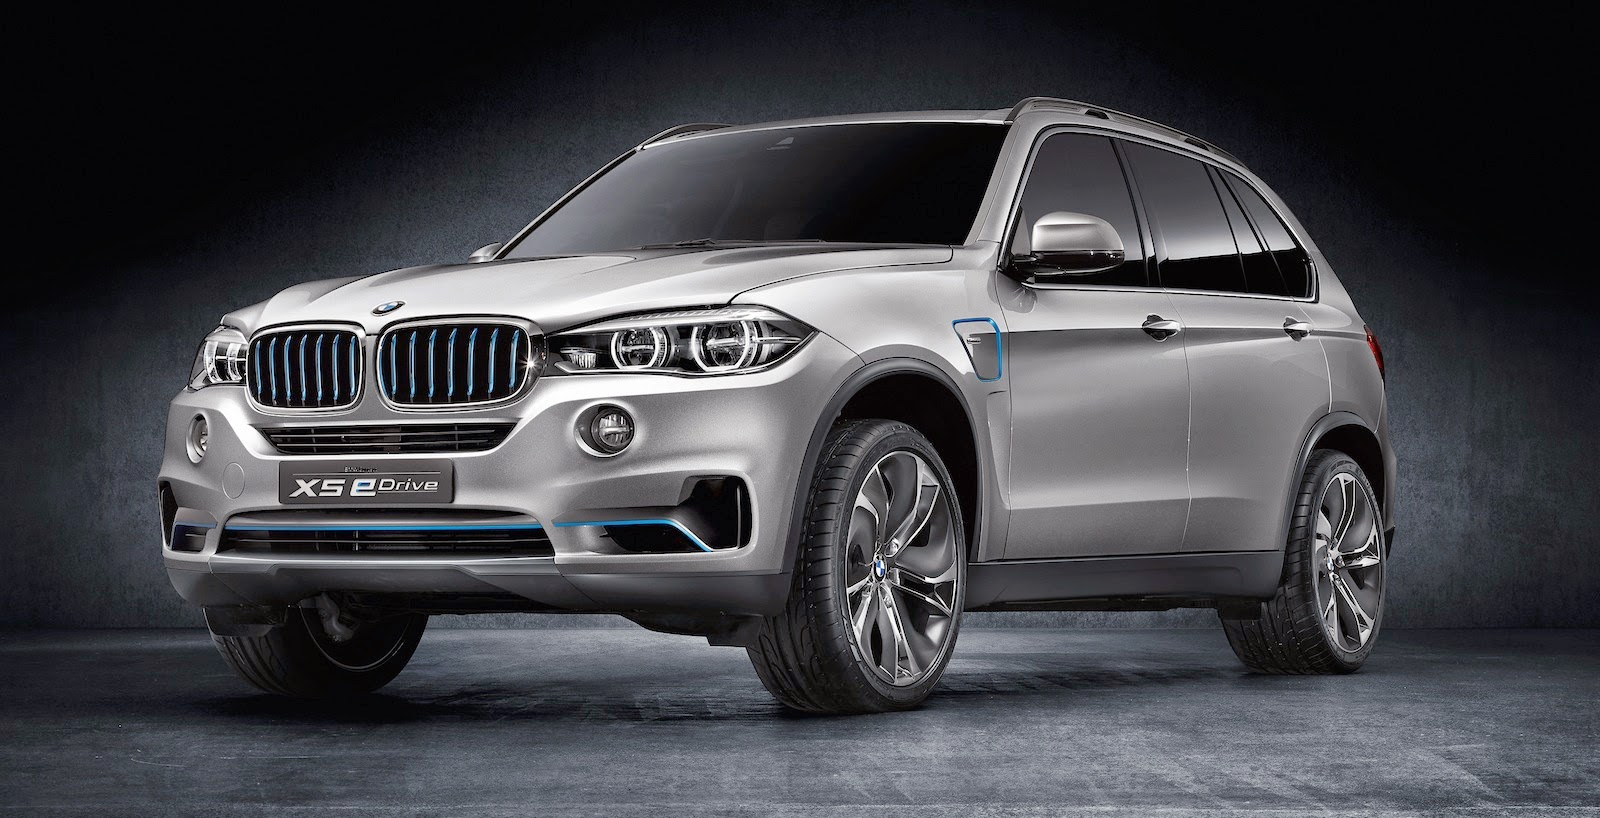 Bmw S Up With Concept X5 Edrive Plug In Hybrid